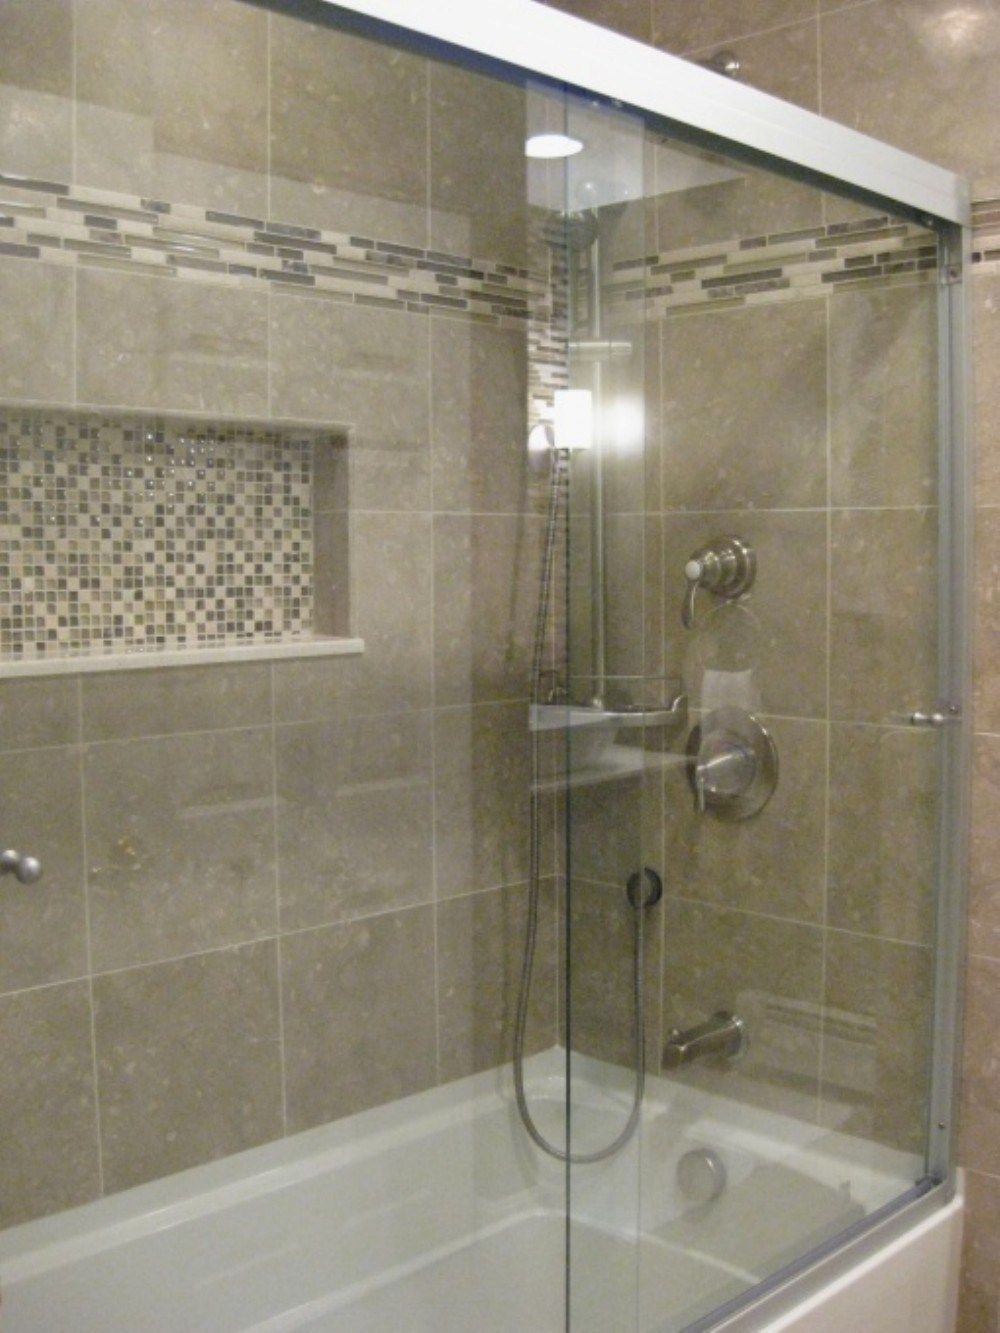 Matchness Com Match Your Sweet Home Small Bathroom Remodel Bathroom Remodel Master Brown Bathroom